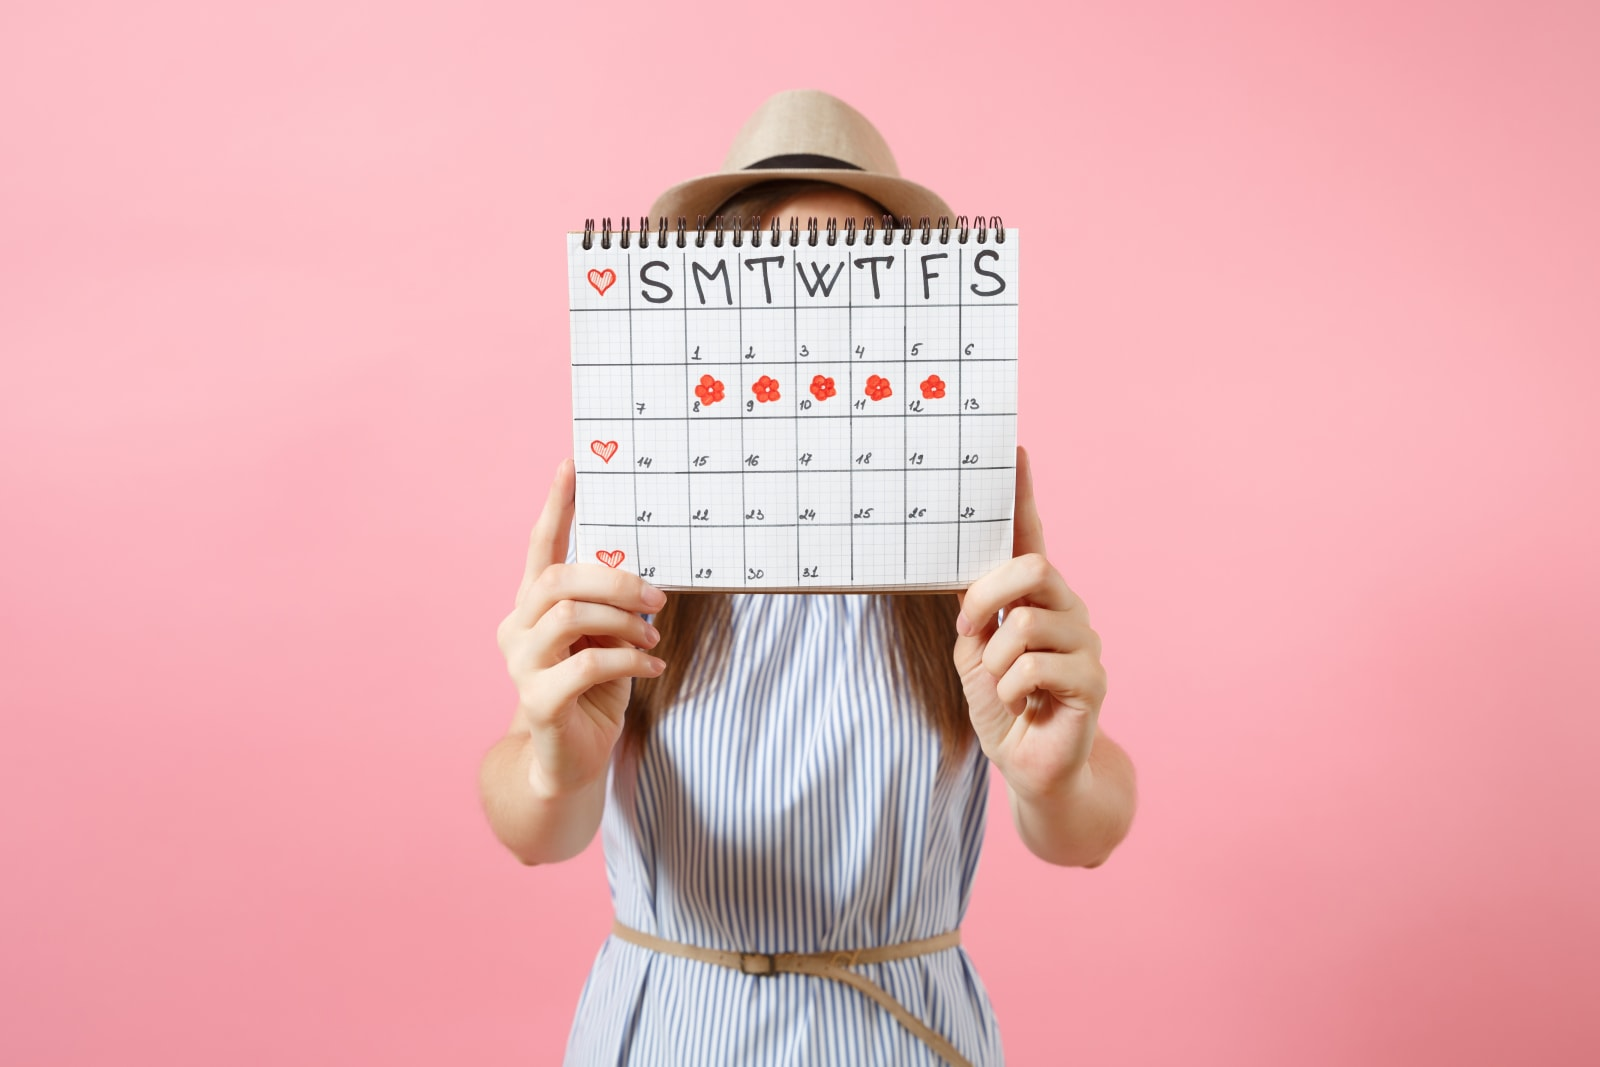 Portrait of woman in blue dress cover face, hiding behind periods calendar for checking menstruation days isolated on trending pink background. Medical, healthcare, gynecological concept. Copy space.